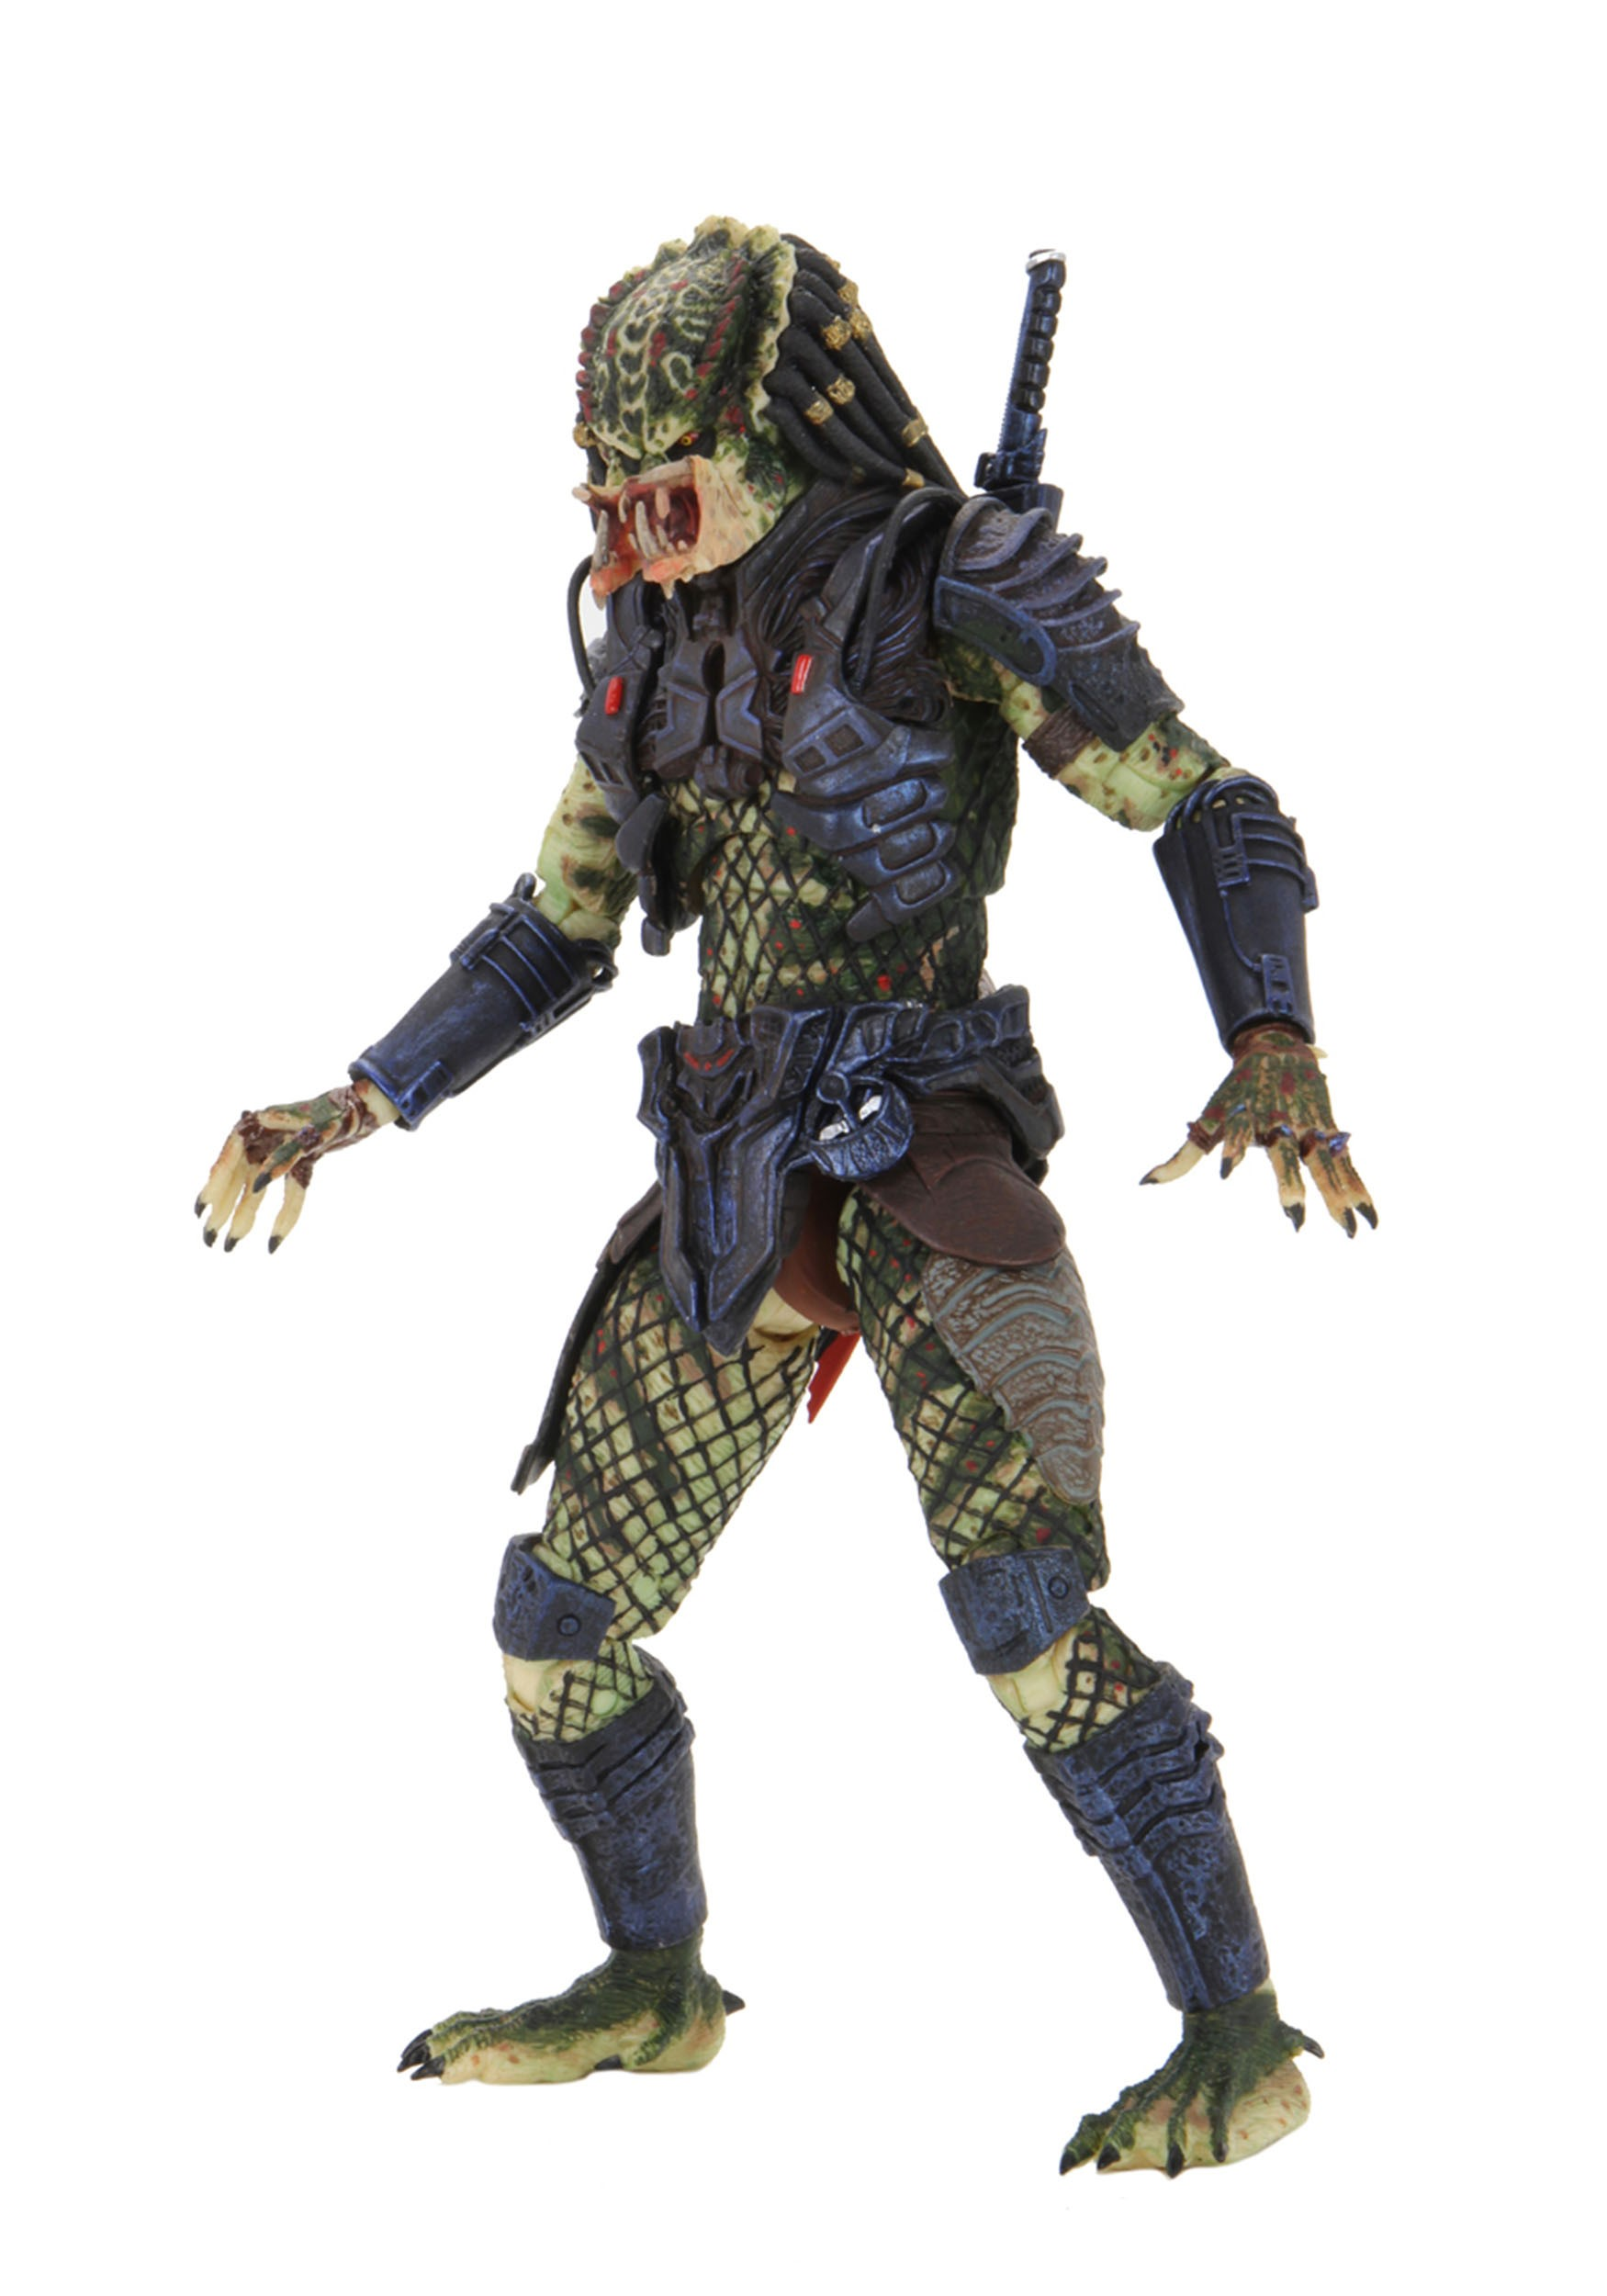 Ultimate Armored Lost Predator 2 Predator 7 Inch Scale Figure